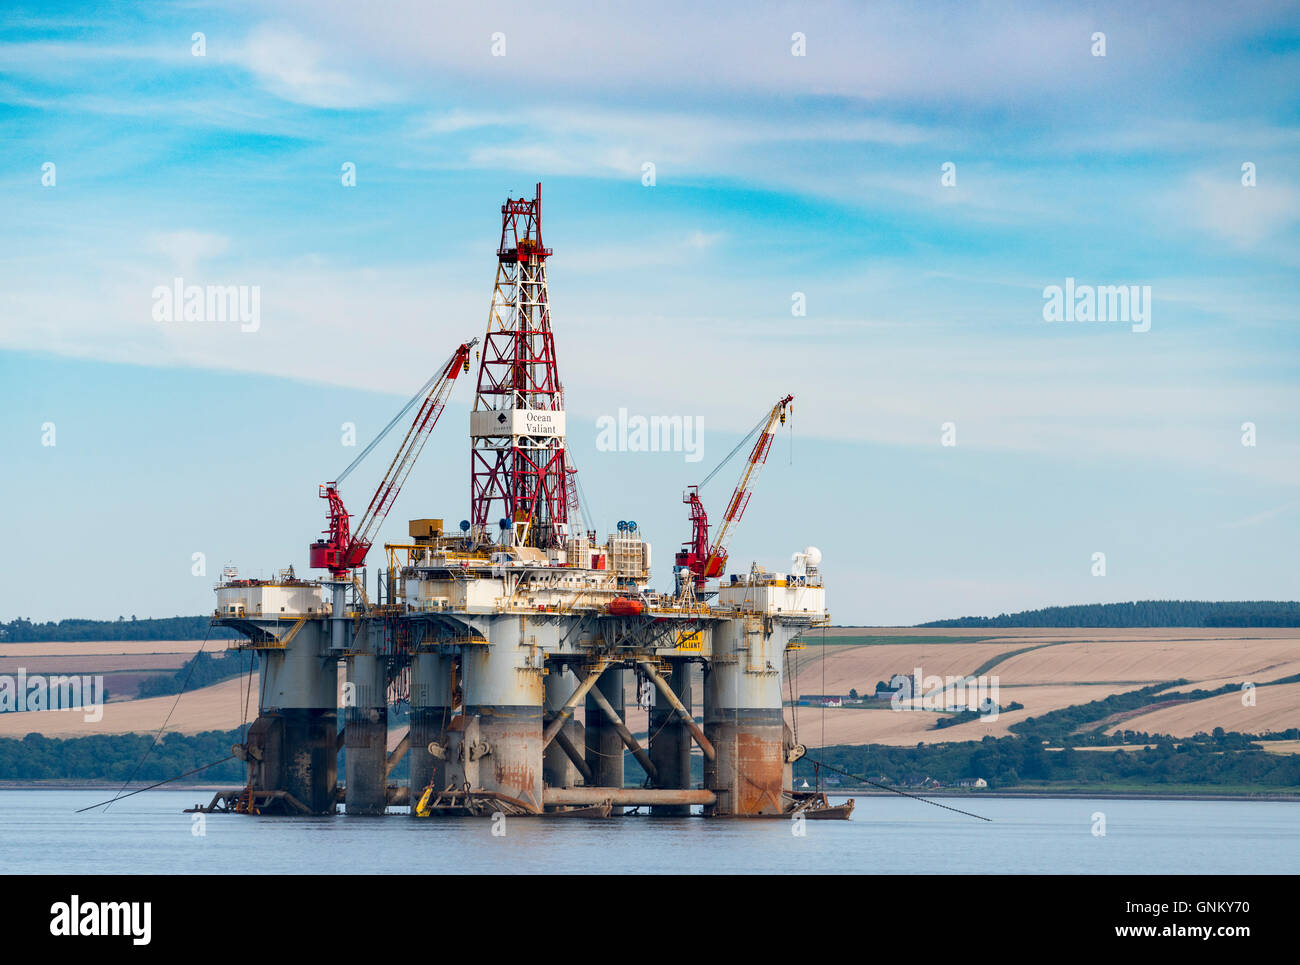 Oil rig/ drilling platform moored in Cromarty Firth in Ross and Cromarty, Highland, Scotland, United Kingdom Stock Photo